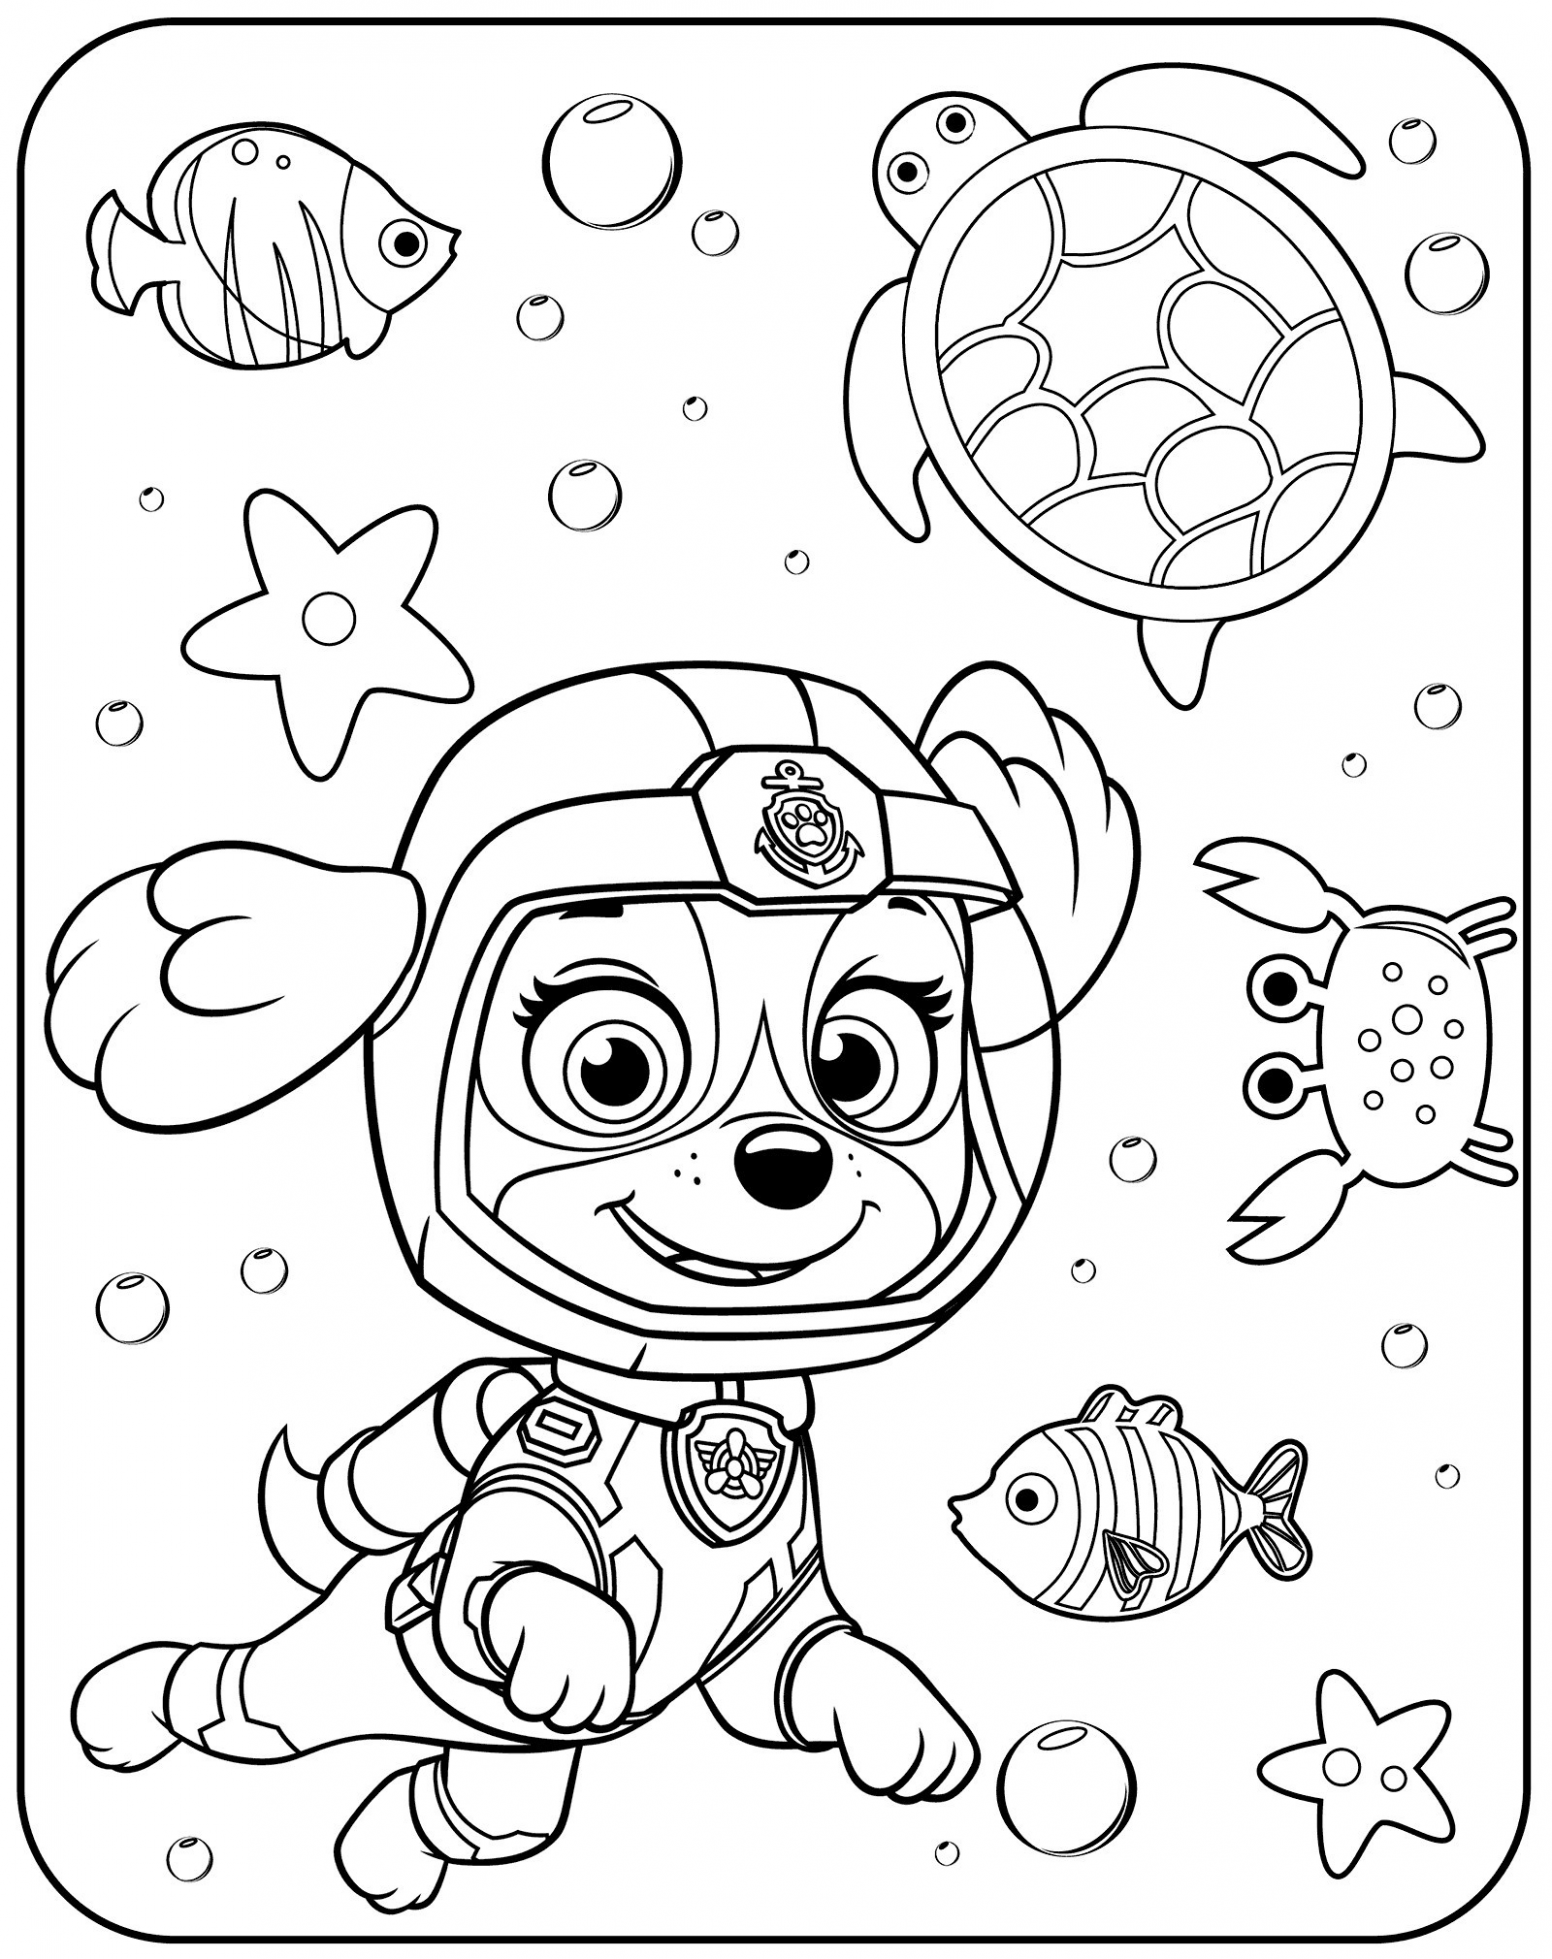 Coloring Ideas : Paw Patrol Games Online Free Printables Party City ..